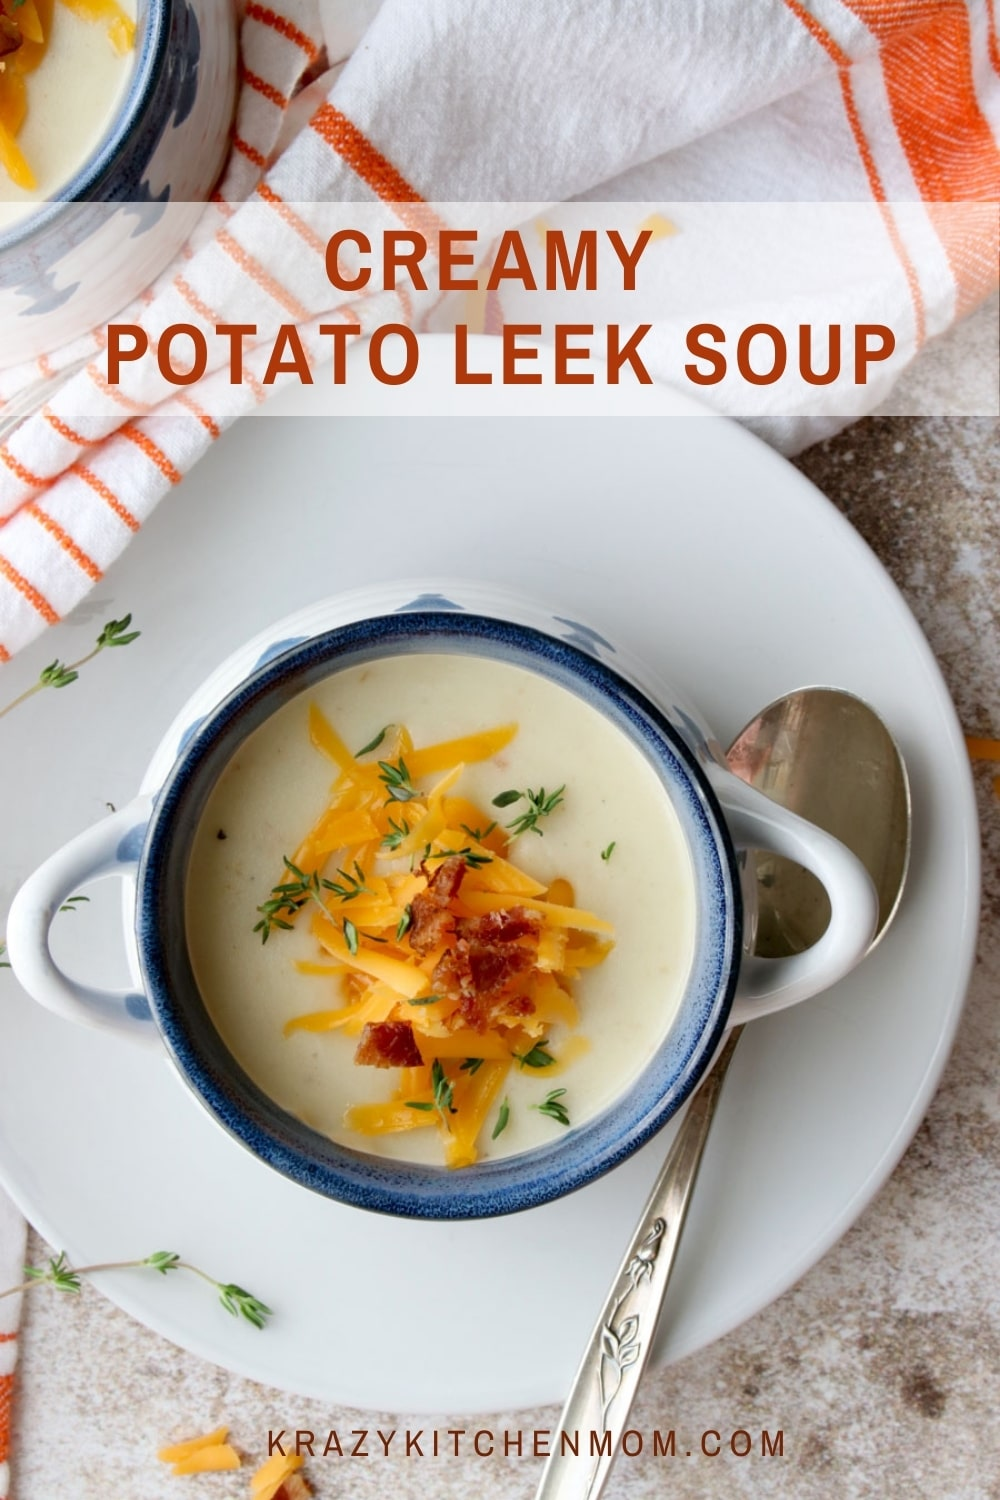 Curl up with a hot bowl of soup loaded with creamy potatoes and leeks topped with cheese and bacon. This hearty soup is made on the stove-top and ready in an hour. It is hearty, hot, and delicious. via @krazykitchenmom